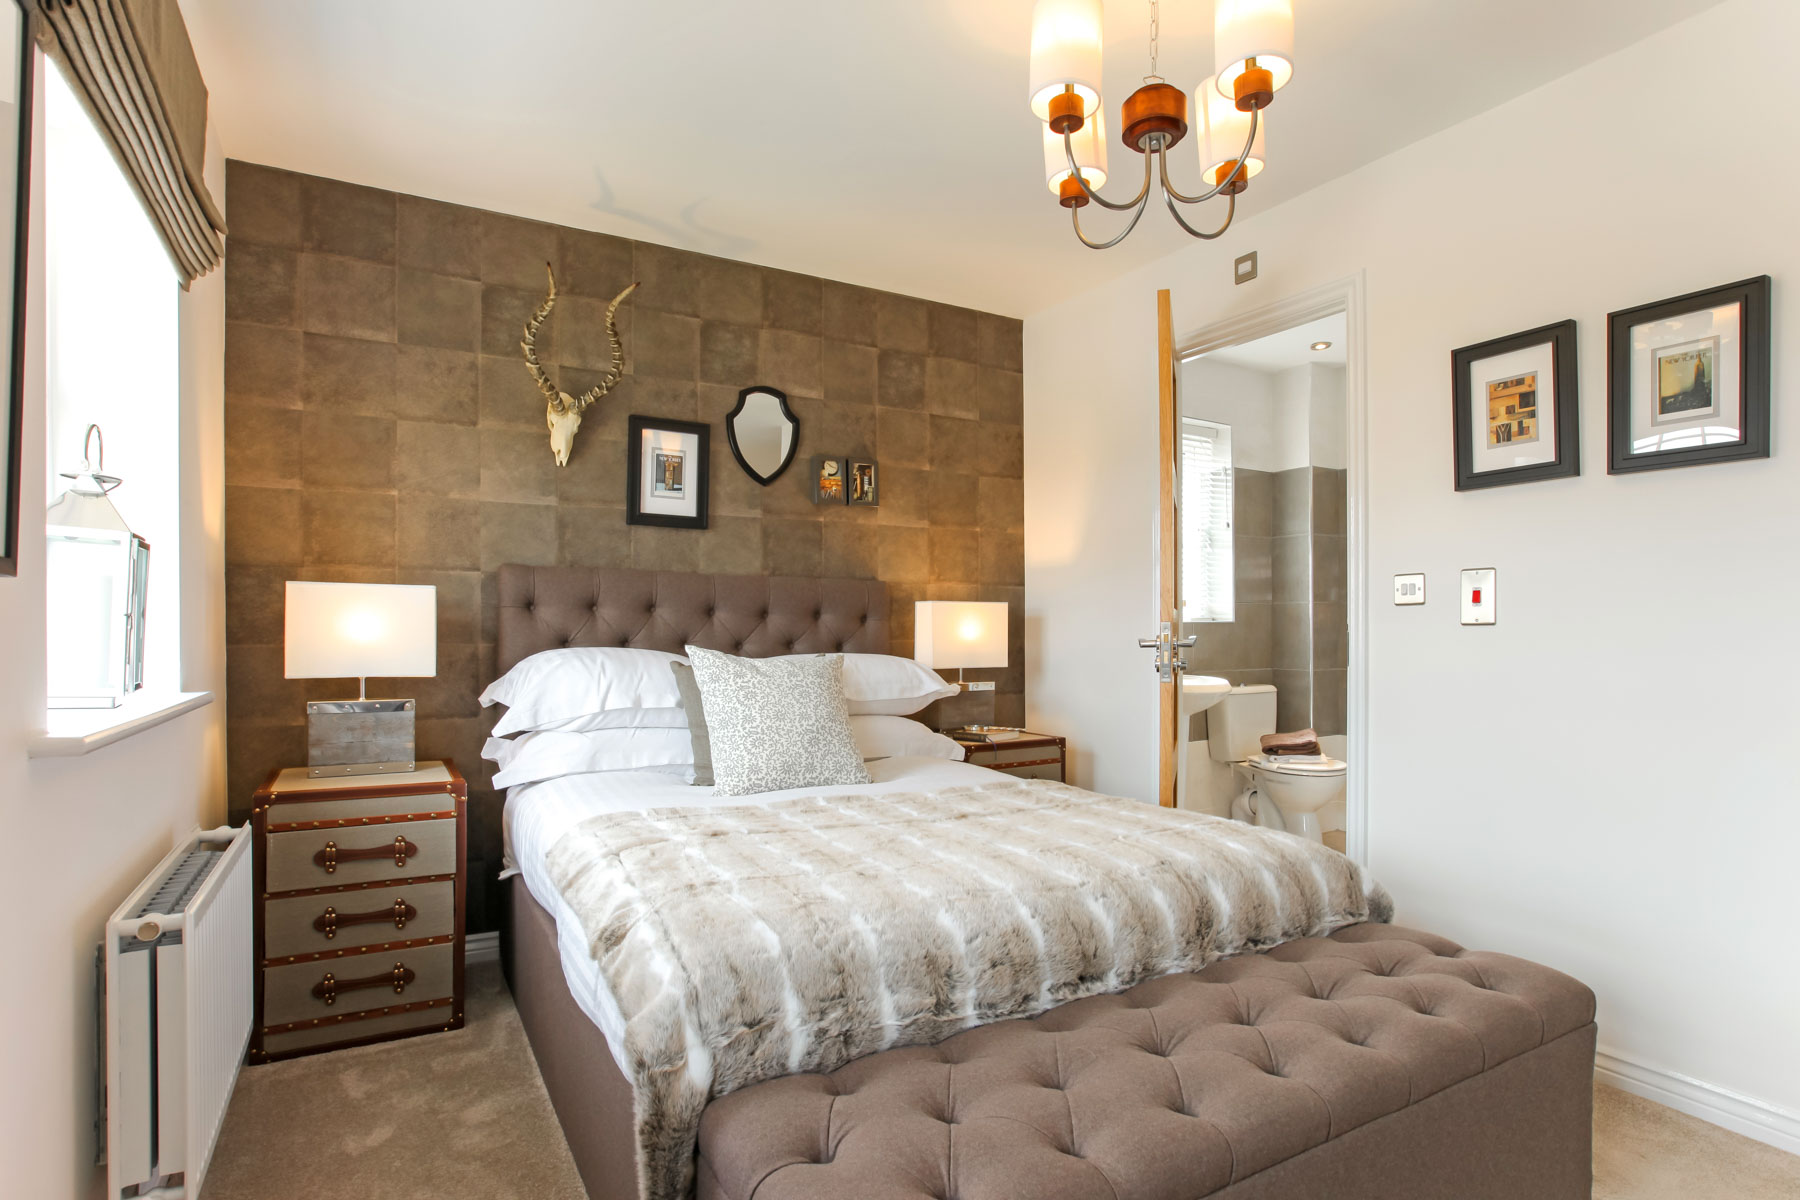 Eynsham_Bedroom_2